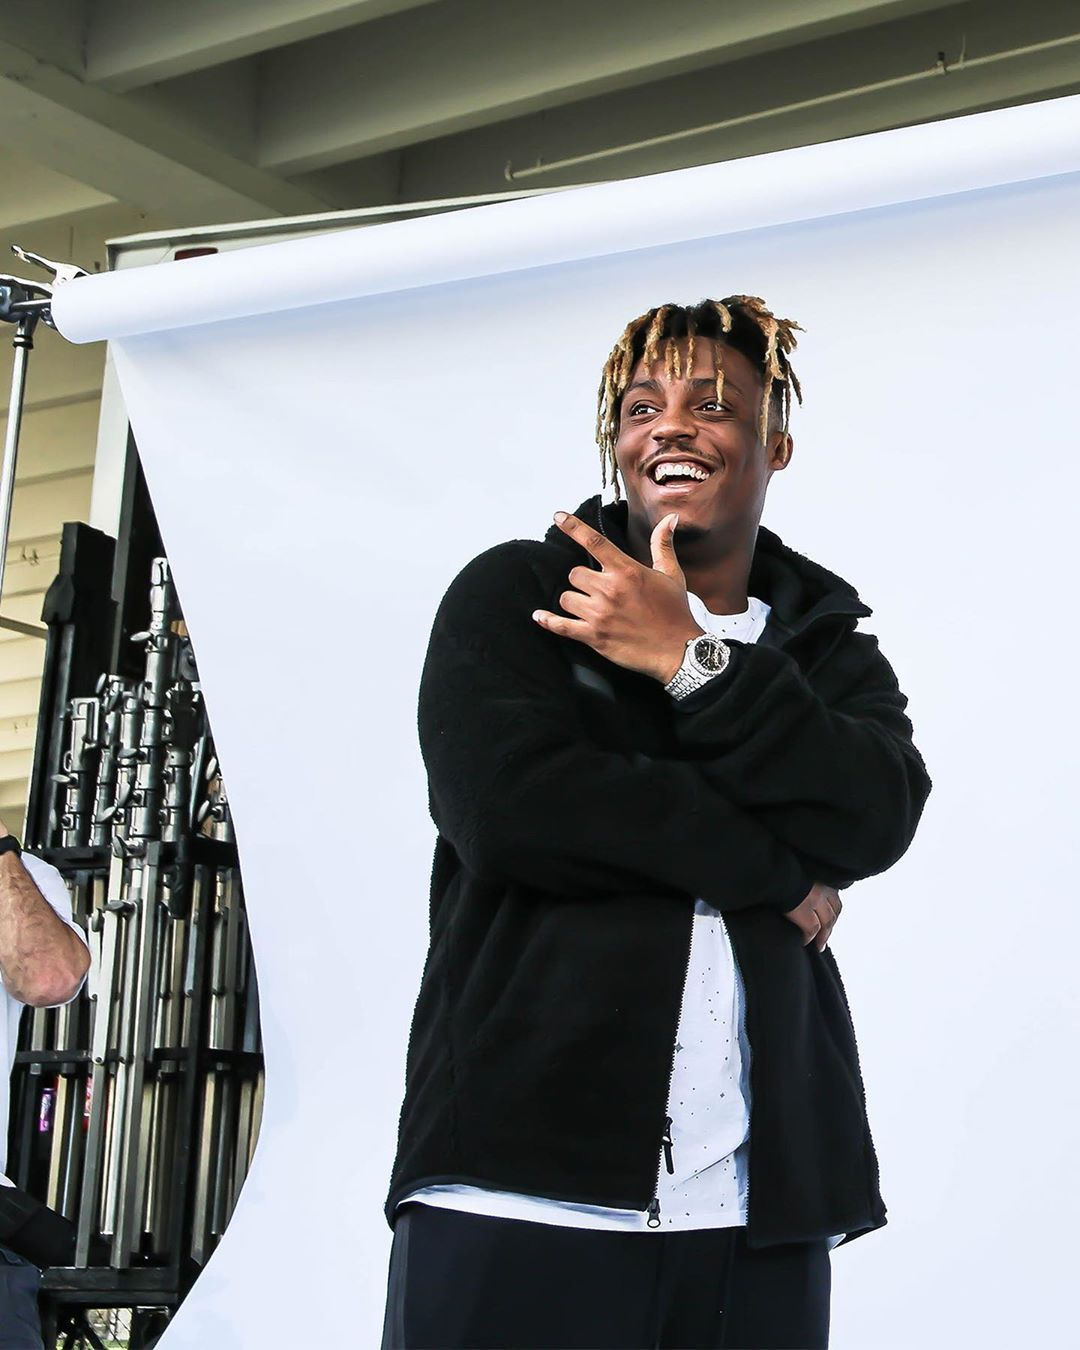 """Foot Locker on Instagram: """"RIP to our friend @juicewrld999. He will be missed. Prayers go out to his family and friends!"""" #juicewlrd"""